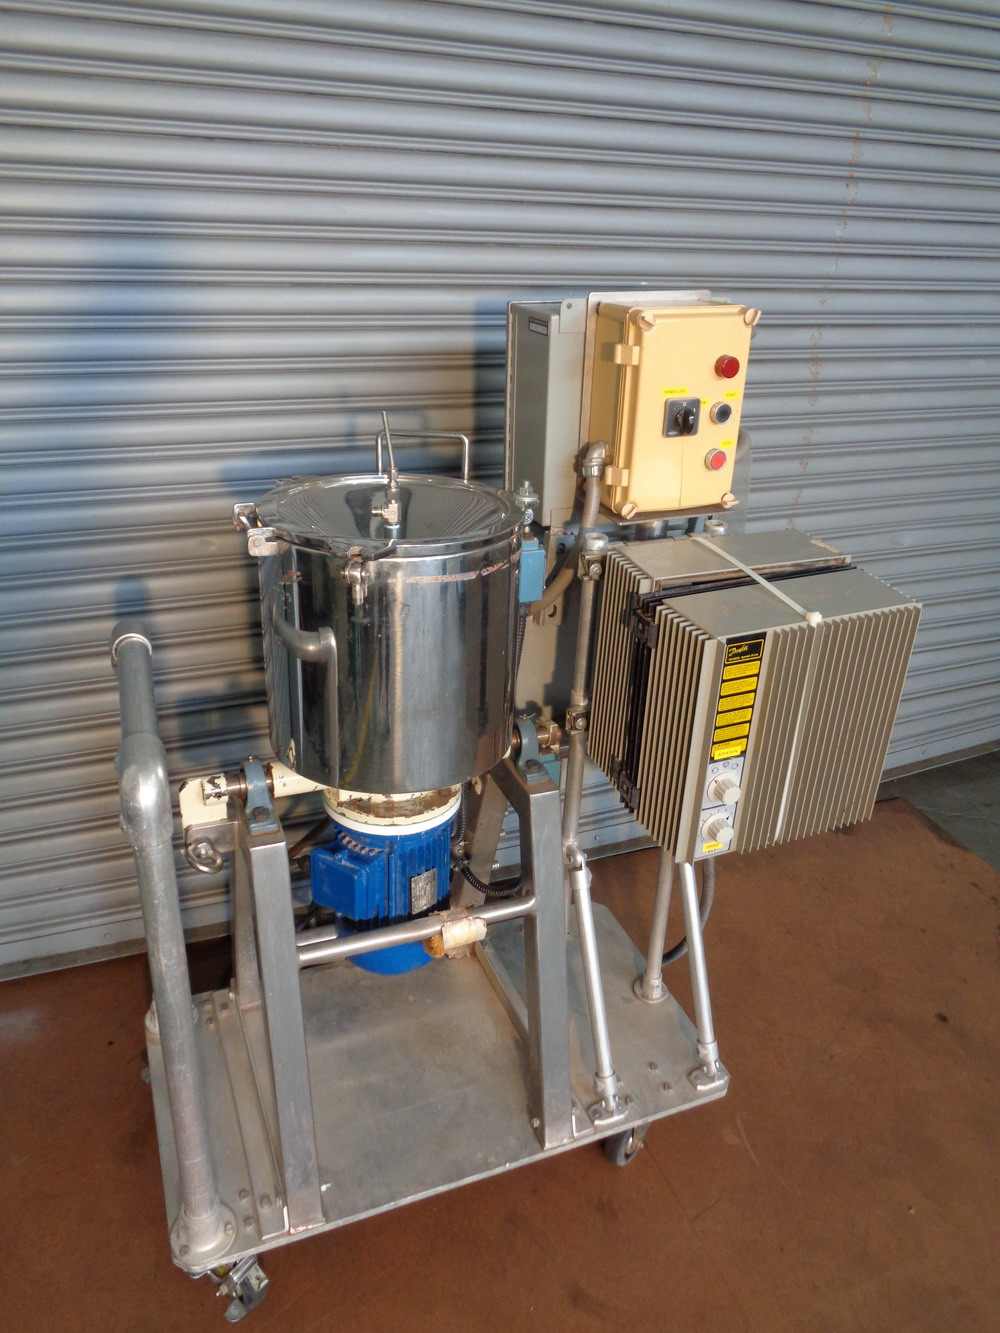 Dosapak 5 gallon Stainless Steel Vertical Powder Mill - Image 2 of 5